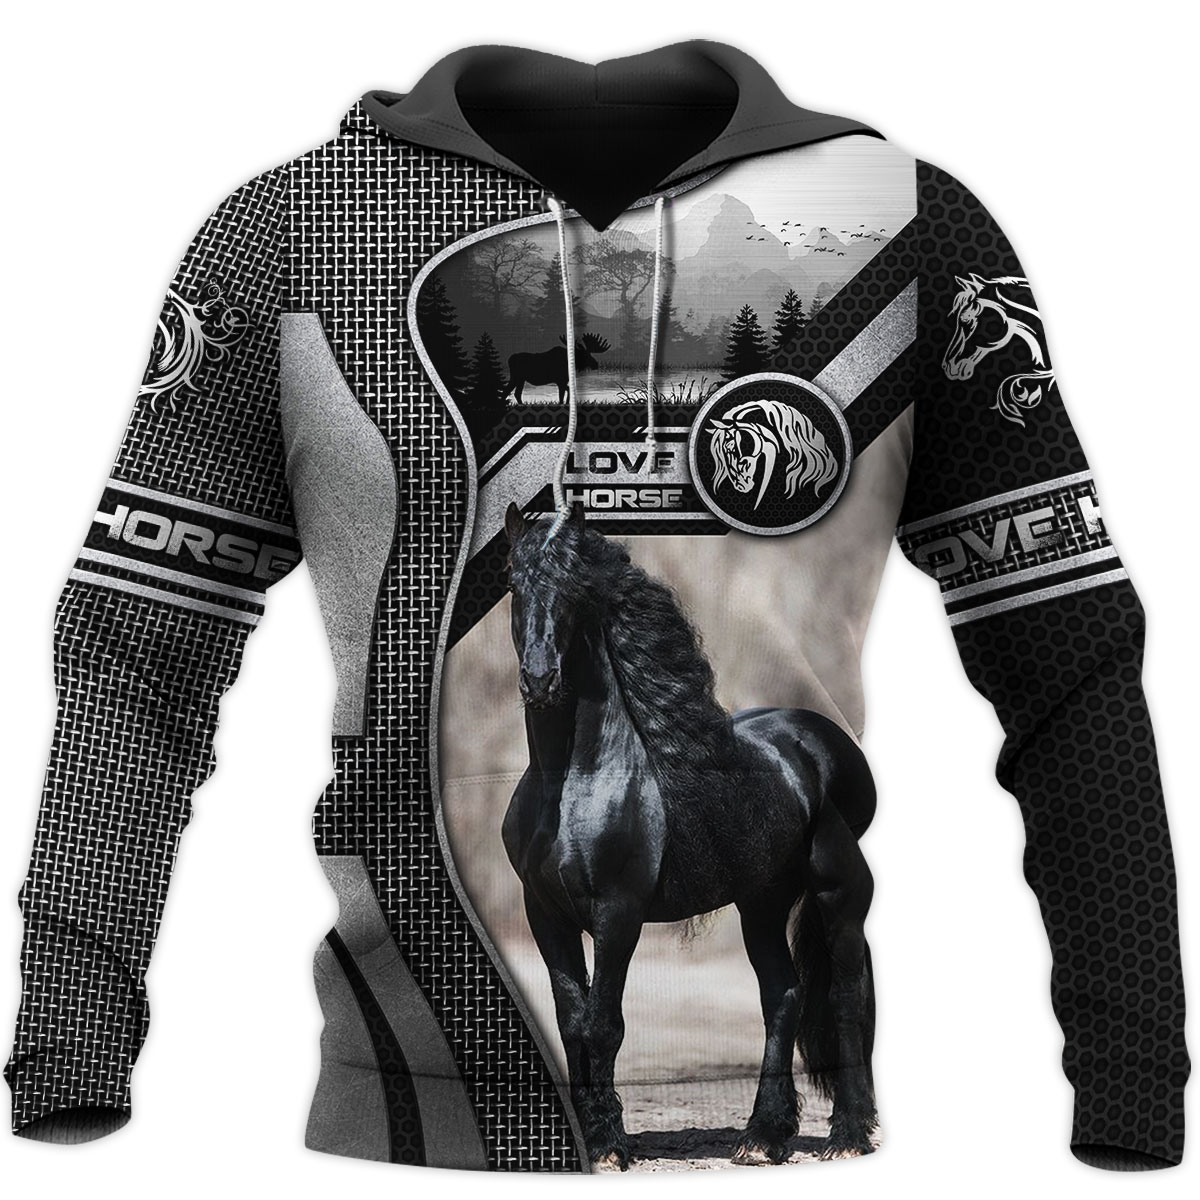 Love Horse 3D All Over Printed Shirts